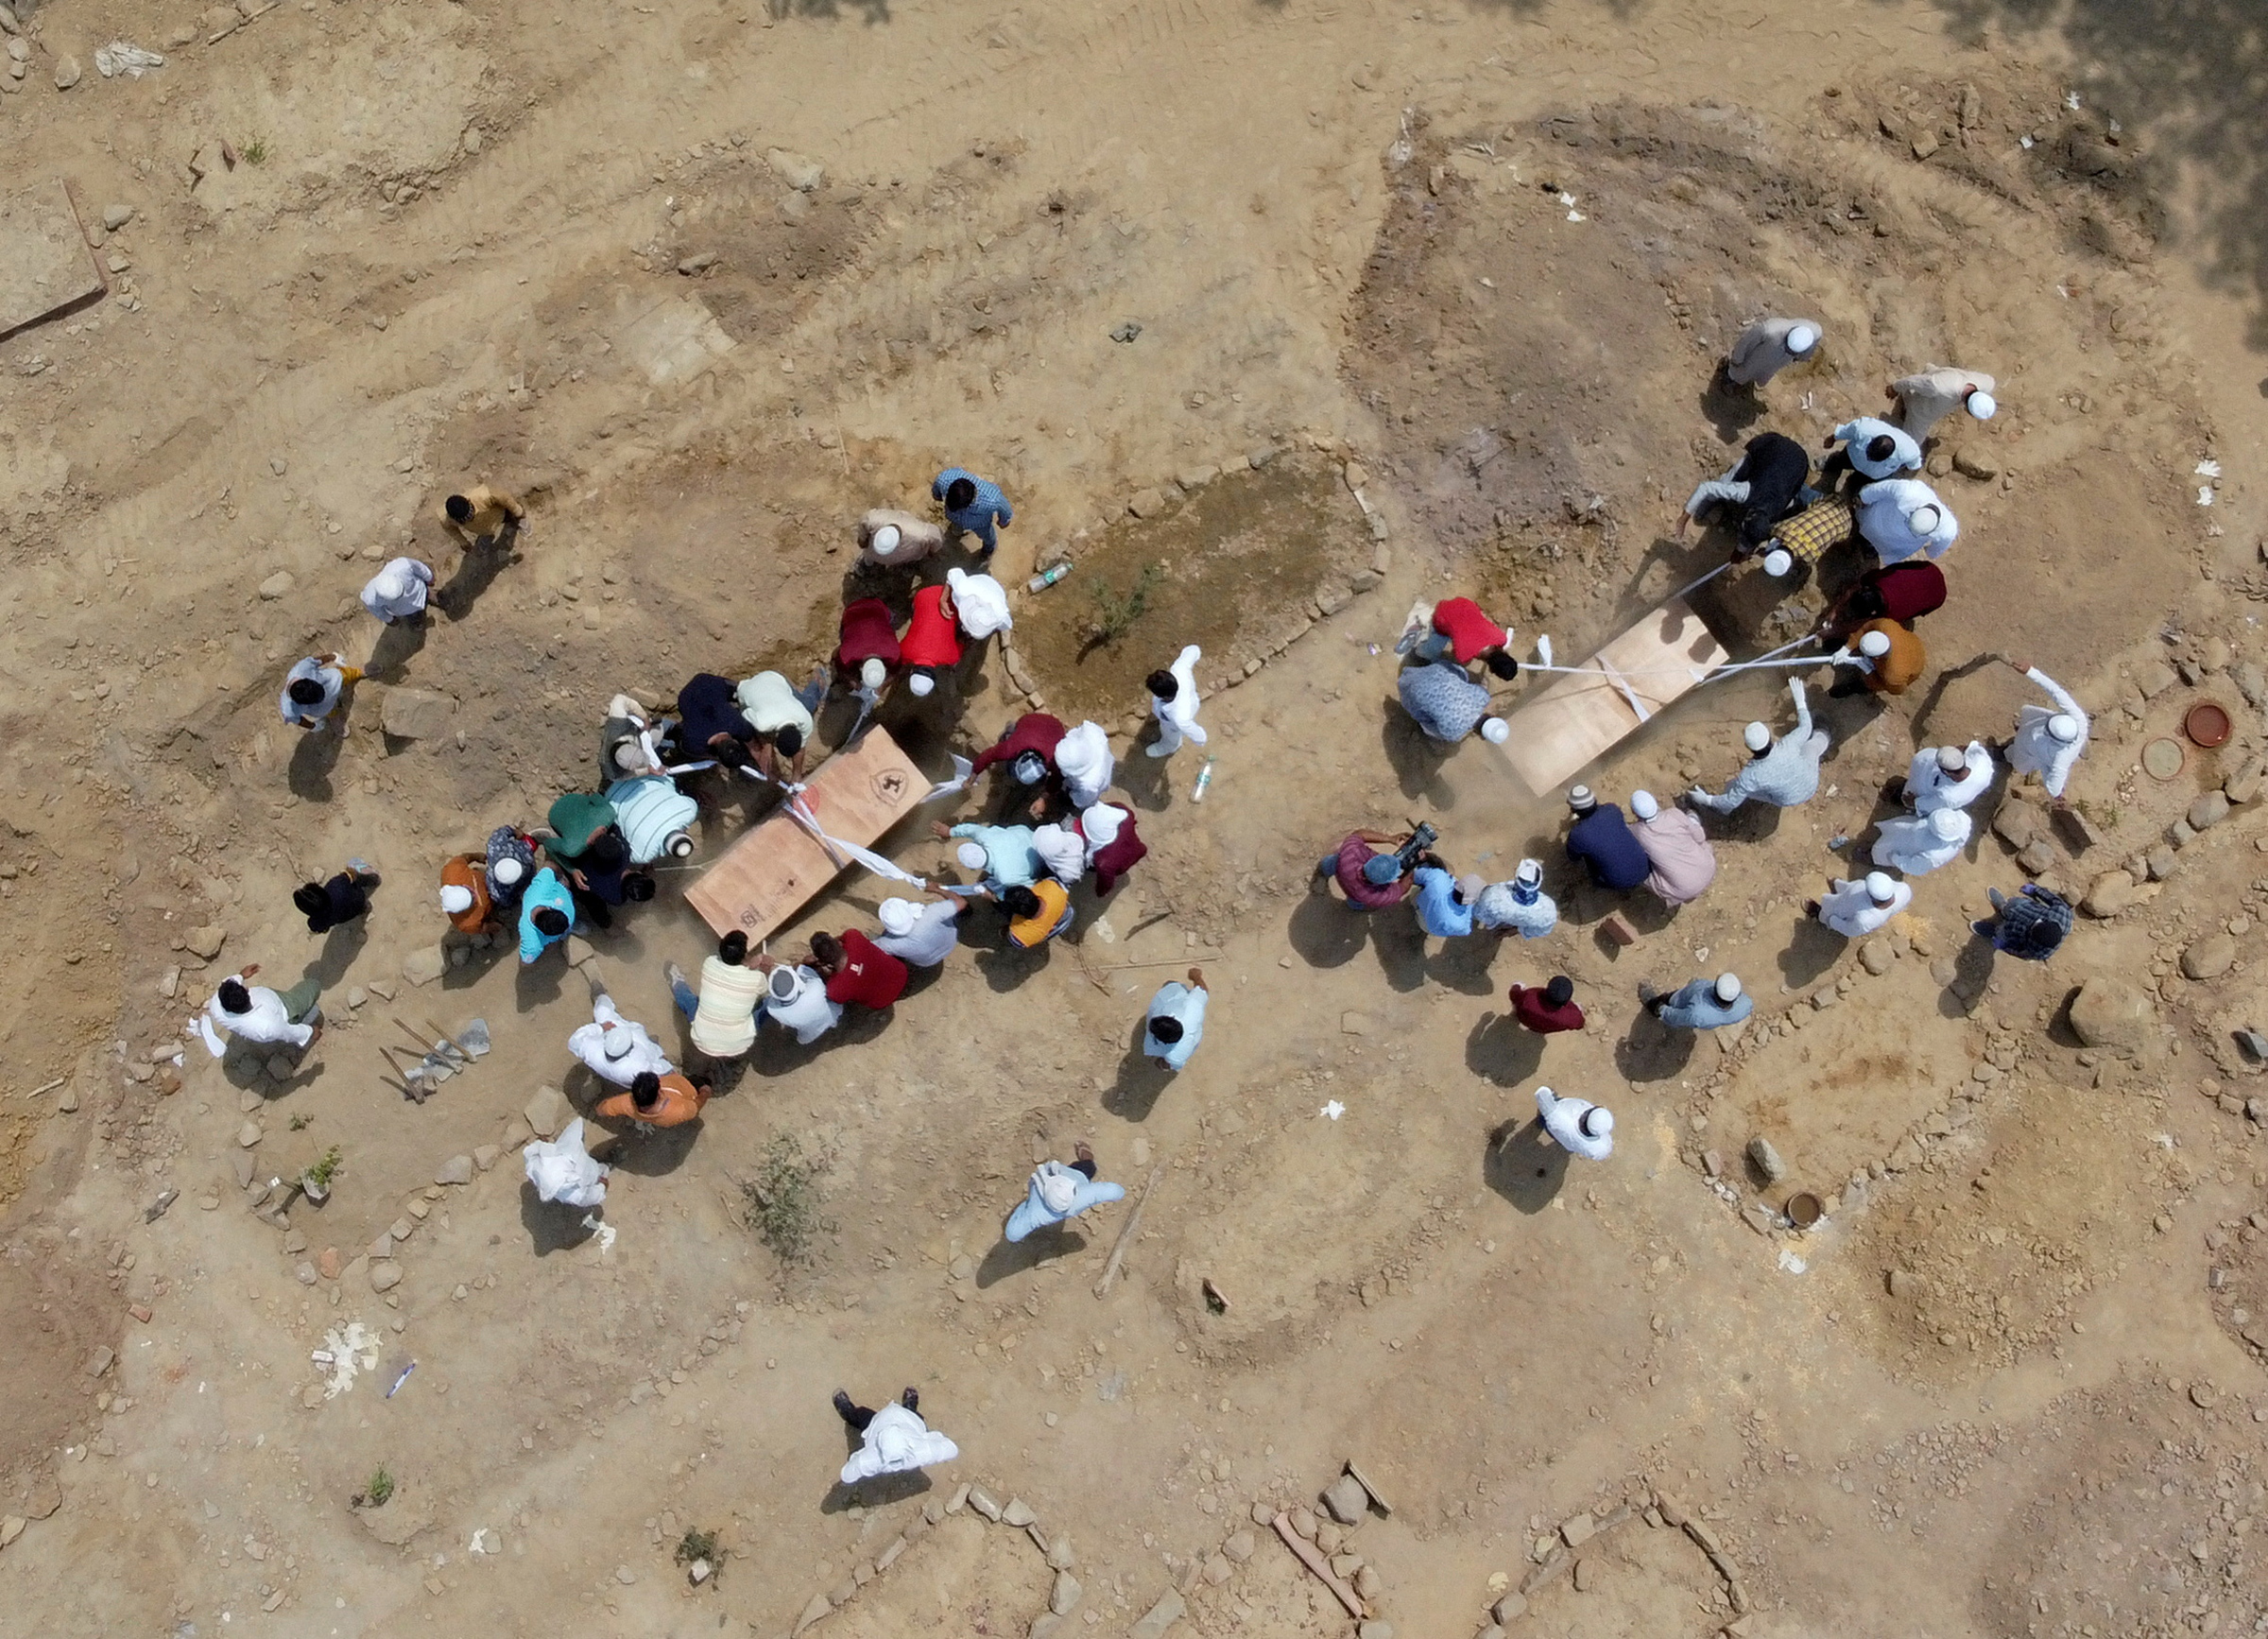 People bury the bodies of COVID-19 victims at a graveyard in New Delhi on April 16, 2021.